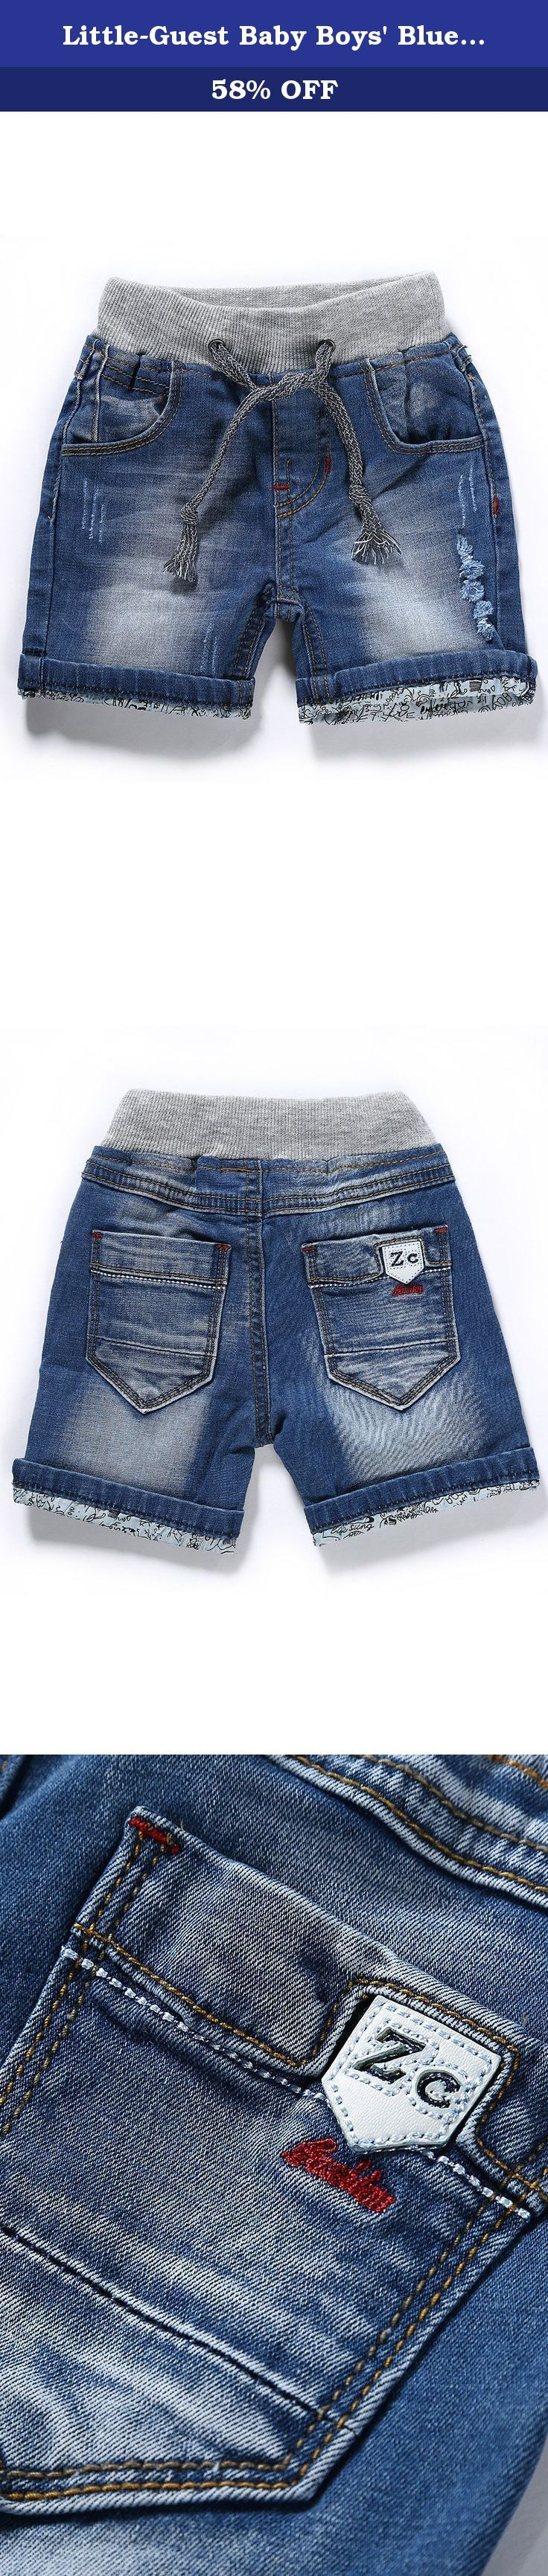 """Little-Guest Baby Boys' Blue Knee-Length Jeans Shorts B208 (9-12 Months, Light Blue). Pay attention to our Size Chart: 6-9 Months WAIST:48cm/18.7"""" HIP:54cm/21.1"""" BOTTOM:24cm/9.4"""" BODY LENGTH:24cm/9.4"""" 9-12 Months WAIST:50cm/19.5"""" HIP:56cm/21.8"""" BOTTOM:25cm/9.8"""" BODY LENGTH:25cm/9.8"""" 12-18 Months WAIST:53cm/20.7"""" HIP:59cm/23"""" BOTTOM:26.5cm/10.3"""" BODY LENGTH:26.5cm/10.3"""" 18-24 Months WAIST:54cm/21.1"""" HIP:60cm/23.4"""" BOTTOM:27cm/10.5"""" BODY LENGTH:27cm/10.5"""" 24-30 Months WAIST:56cm/21.8""""..."""